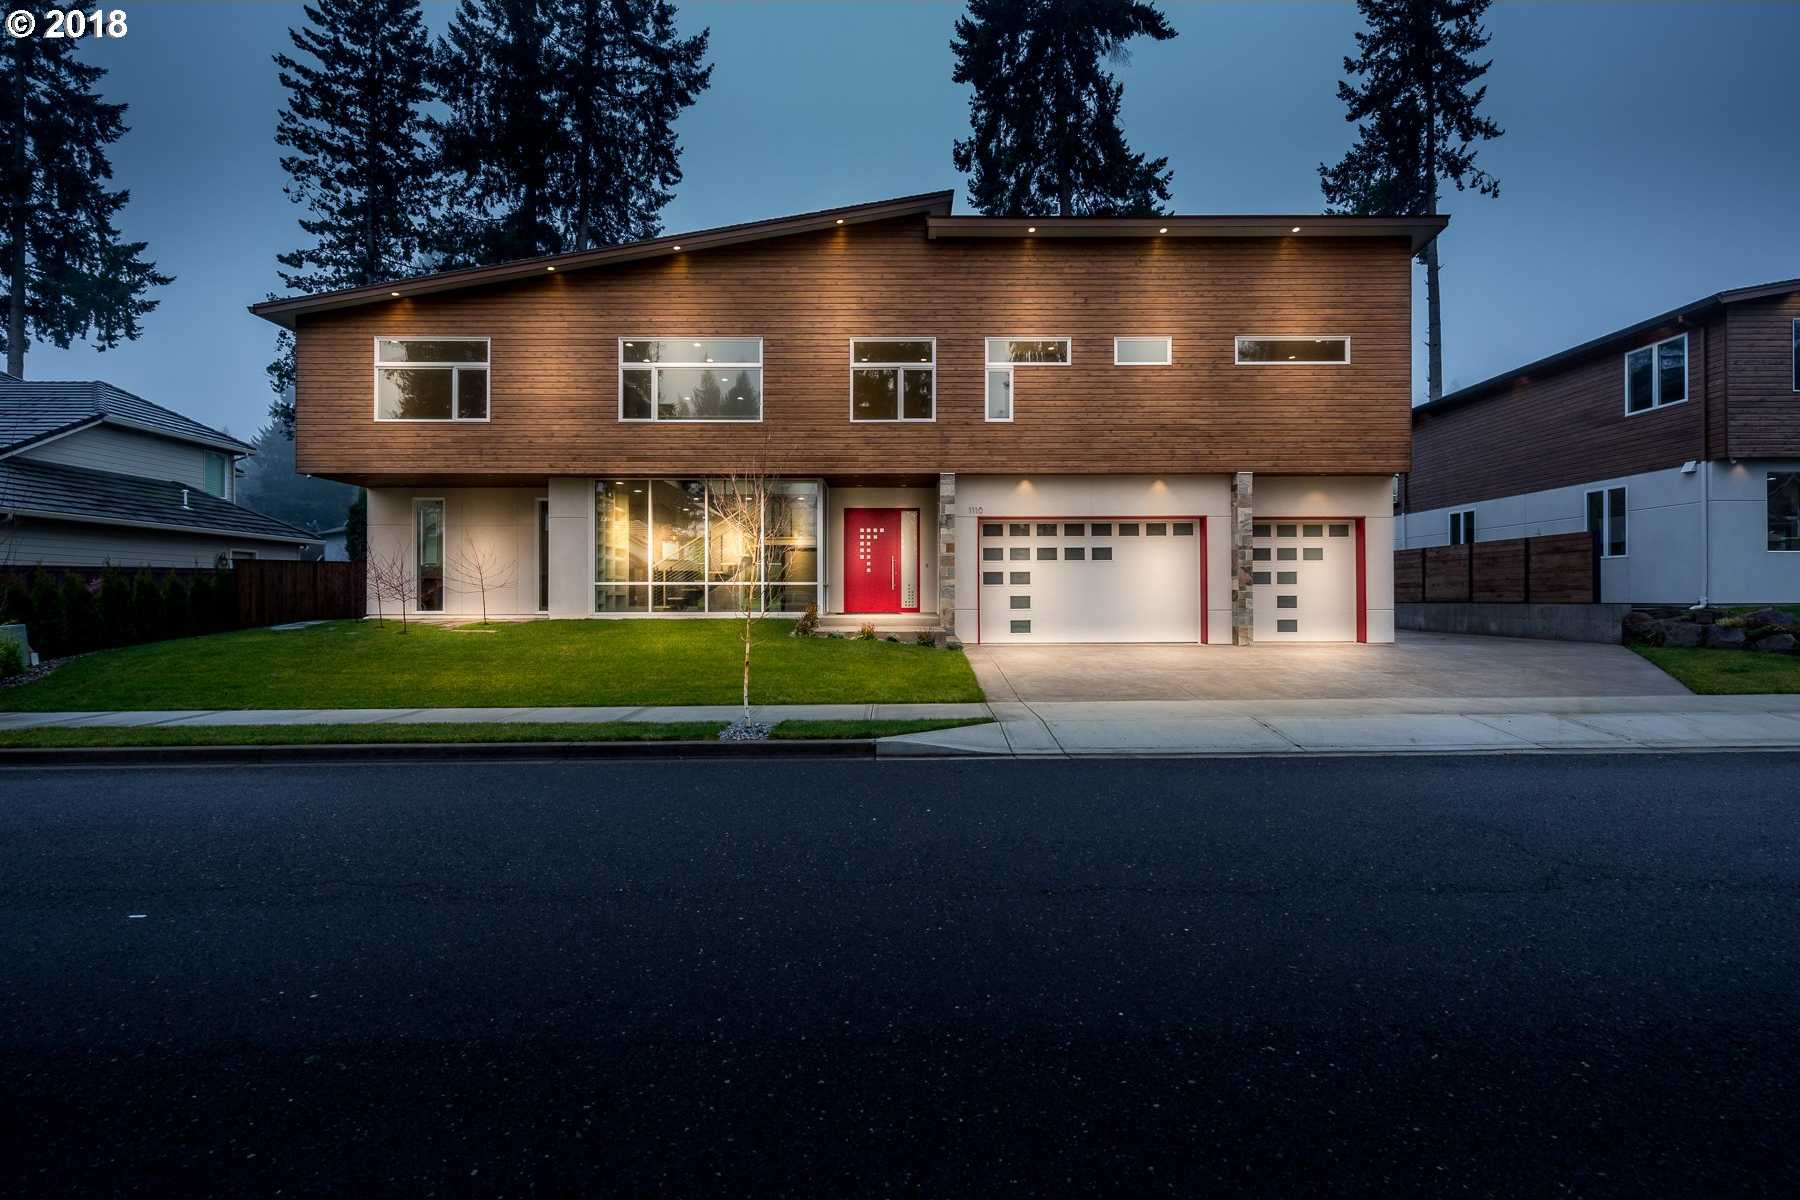 $1,019,000 - 4Br/4Ba -  for Sale in First Place, Vancouver